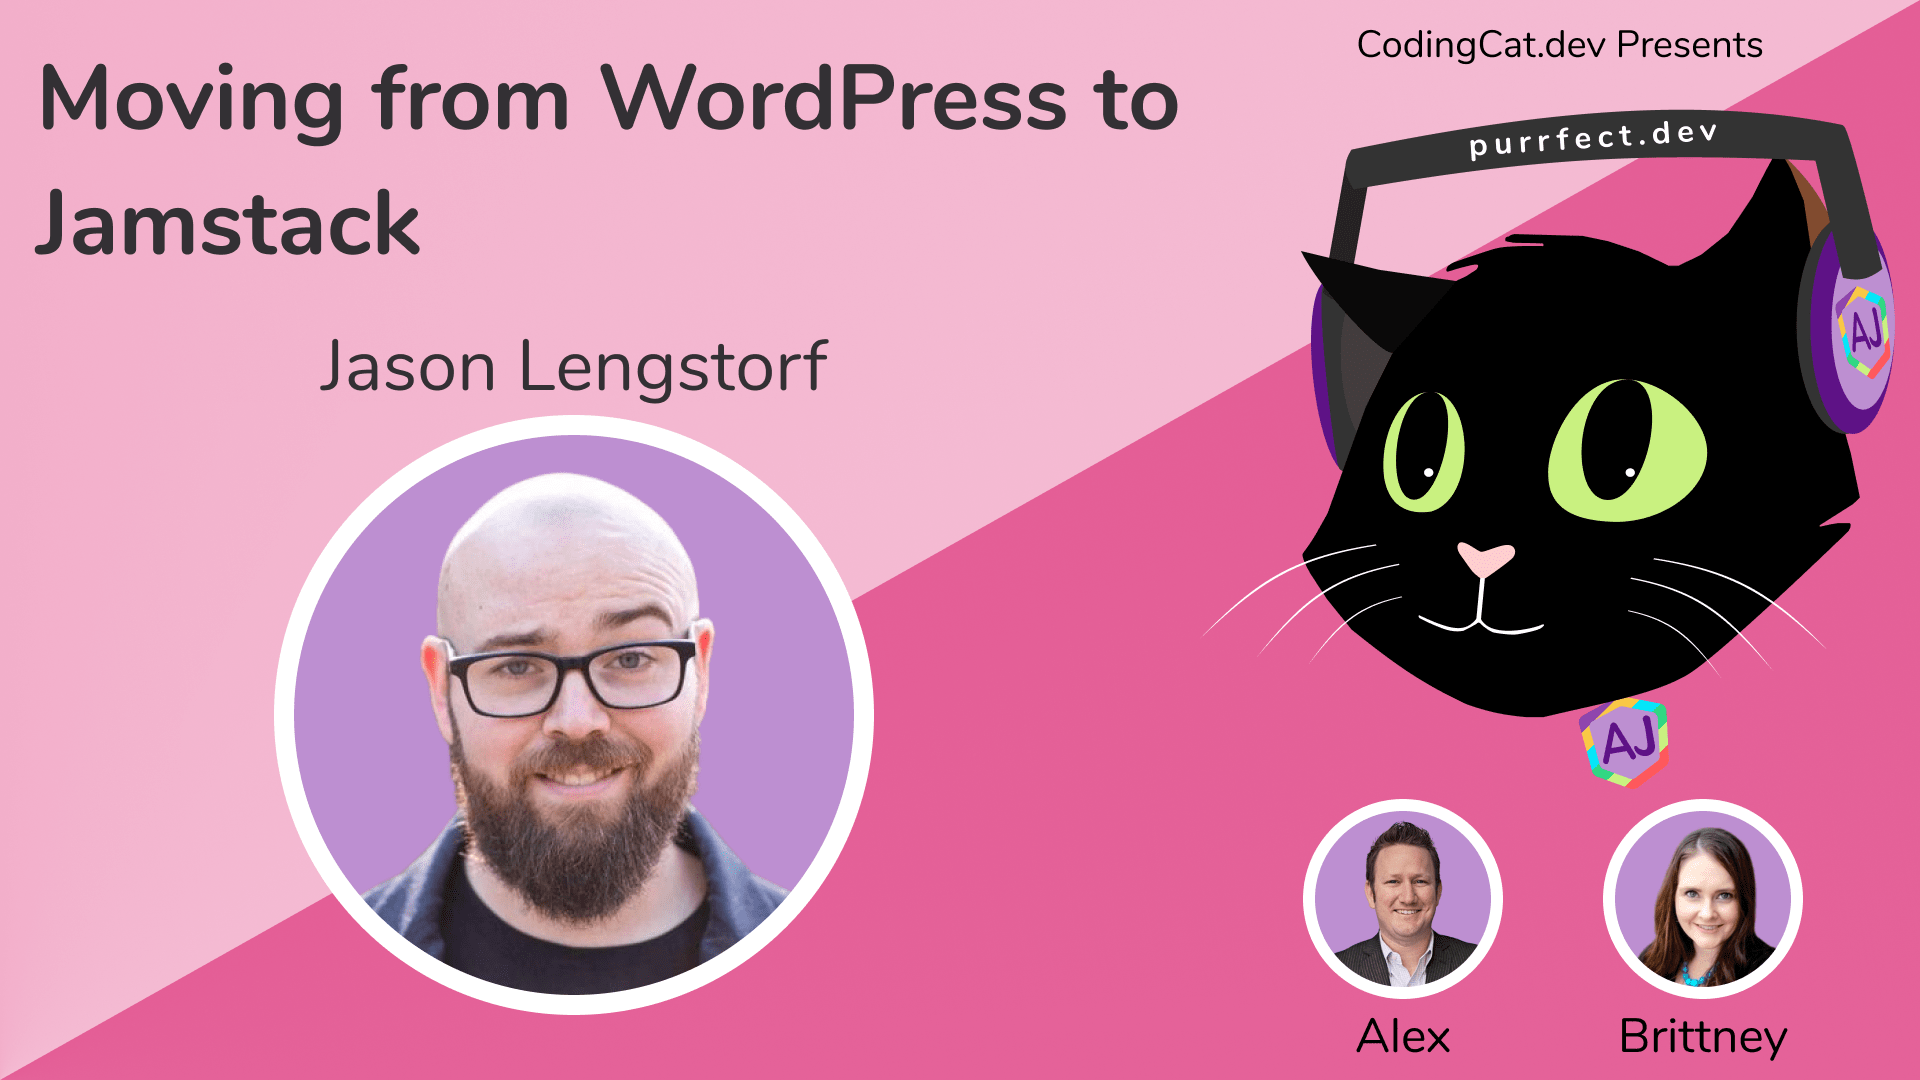 1.11 - Moving from WordPress to Jamstack